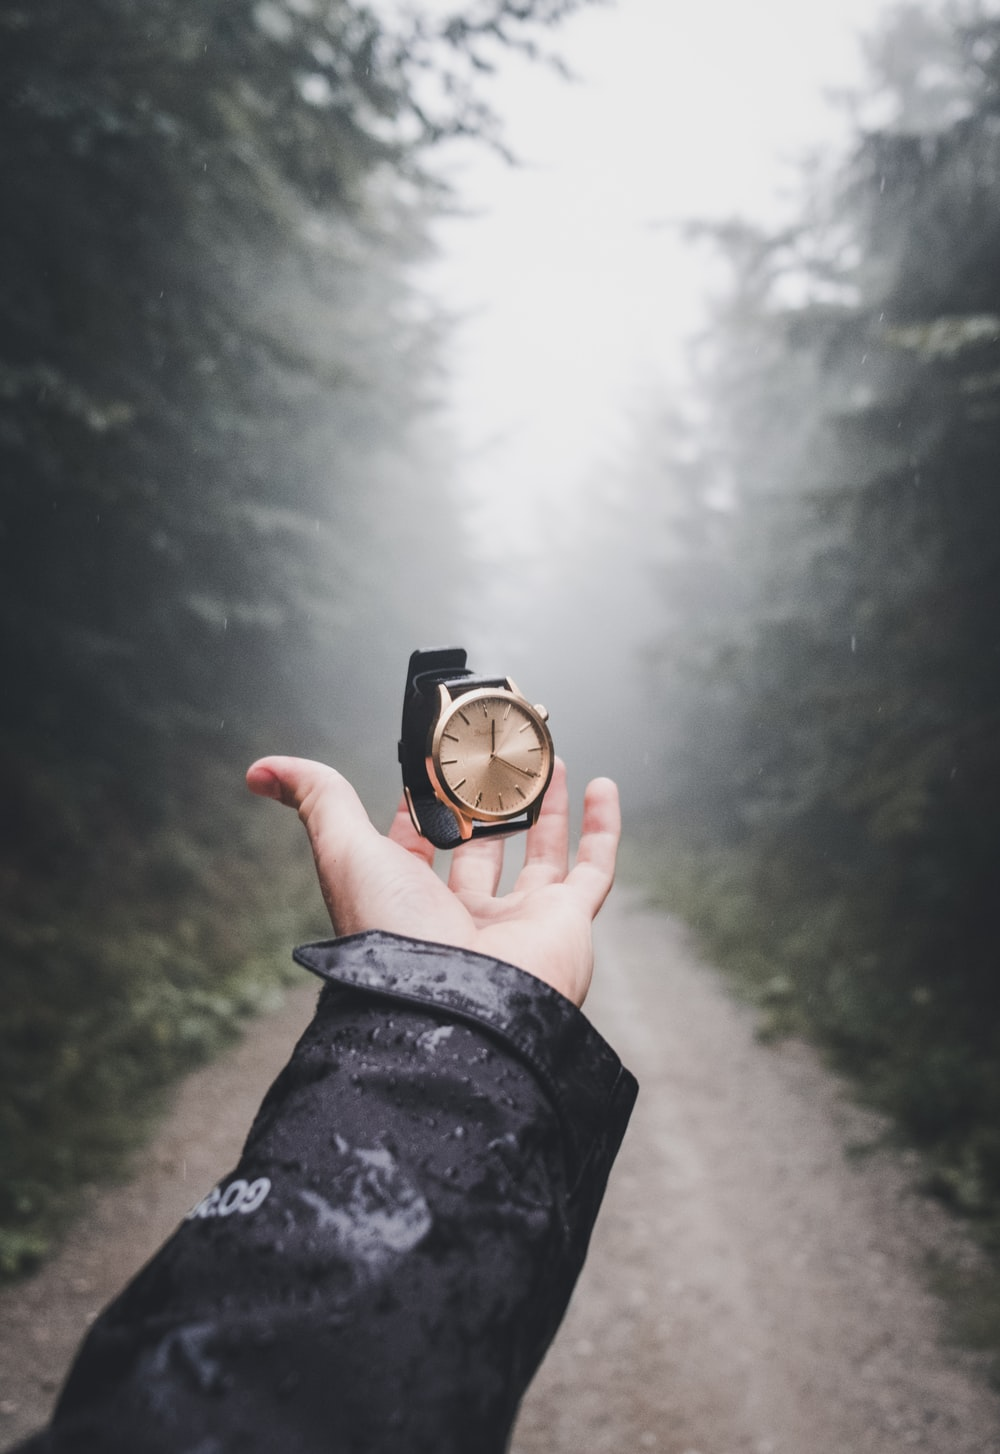 person holding round gold-colored analog watch